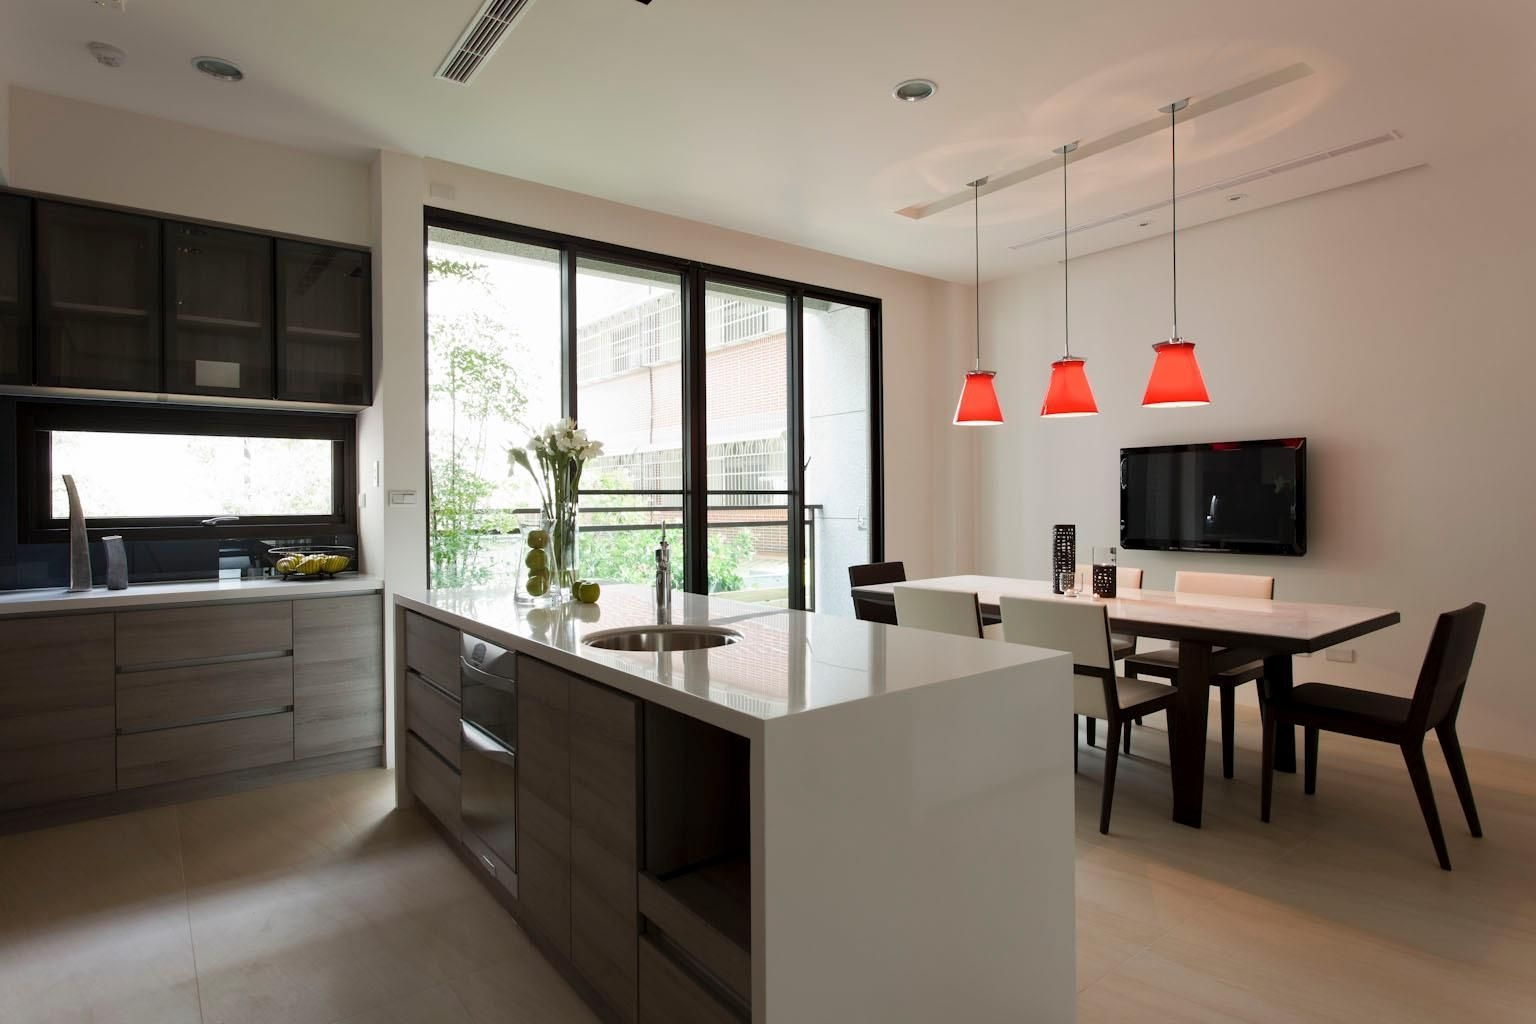 Interior Modern Kitchen Diner Orange Pendant Lamp Dining Room Design Ideas Kitchen Island